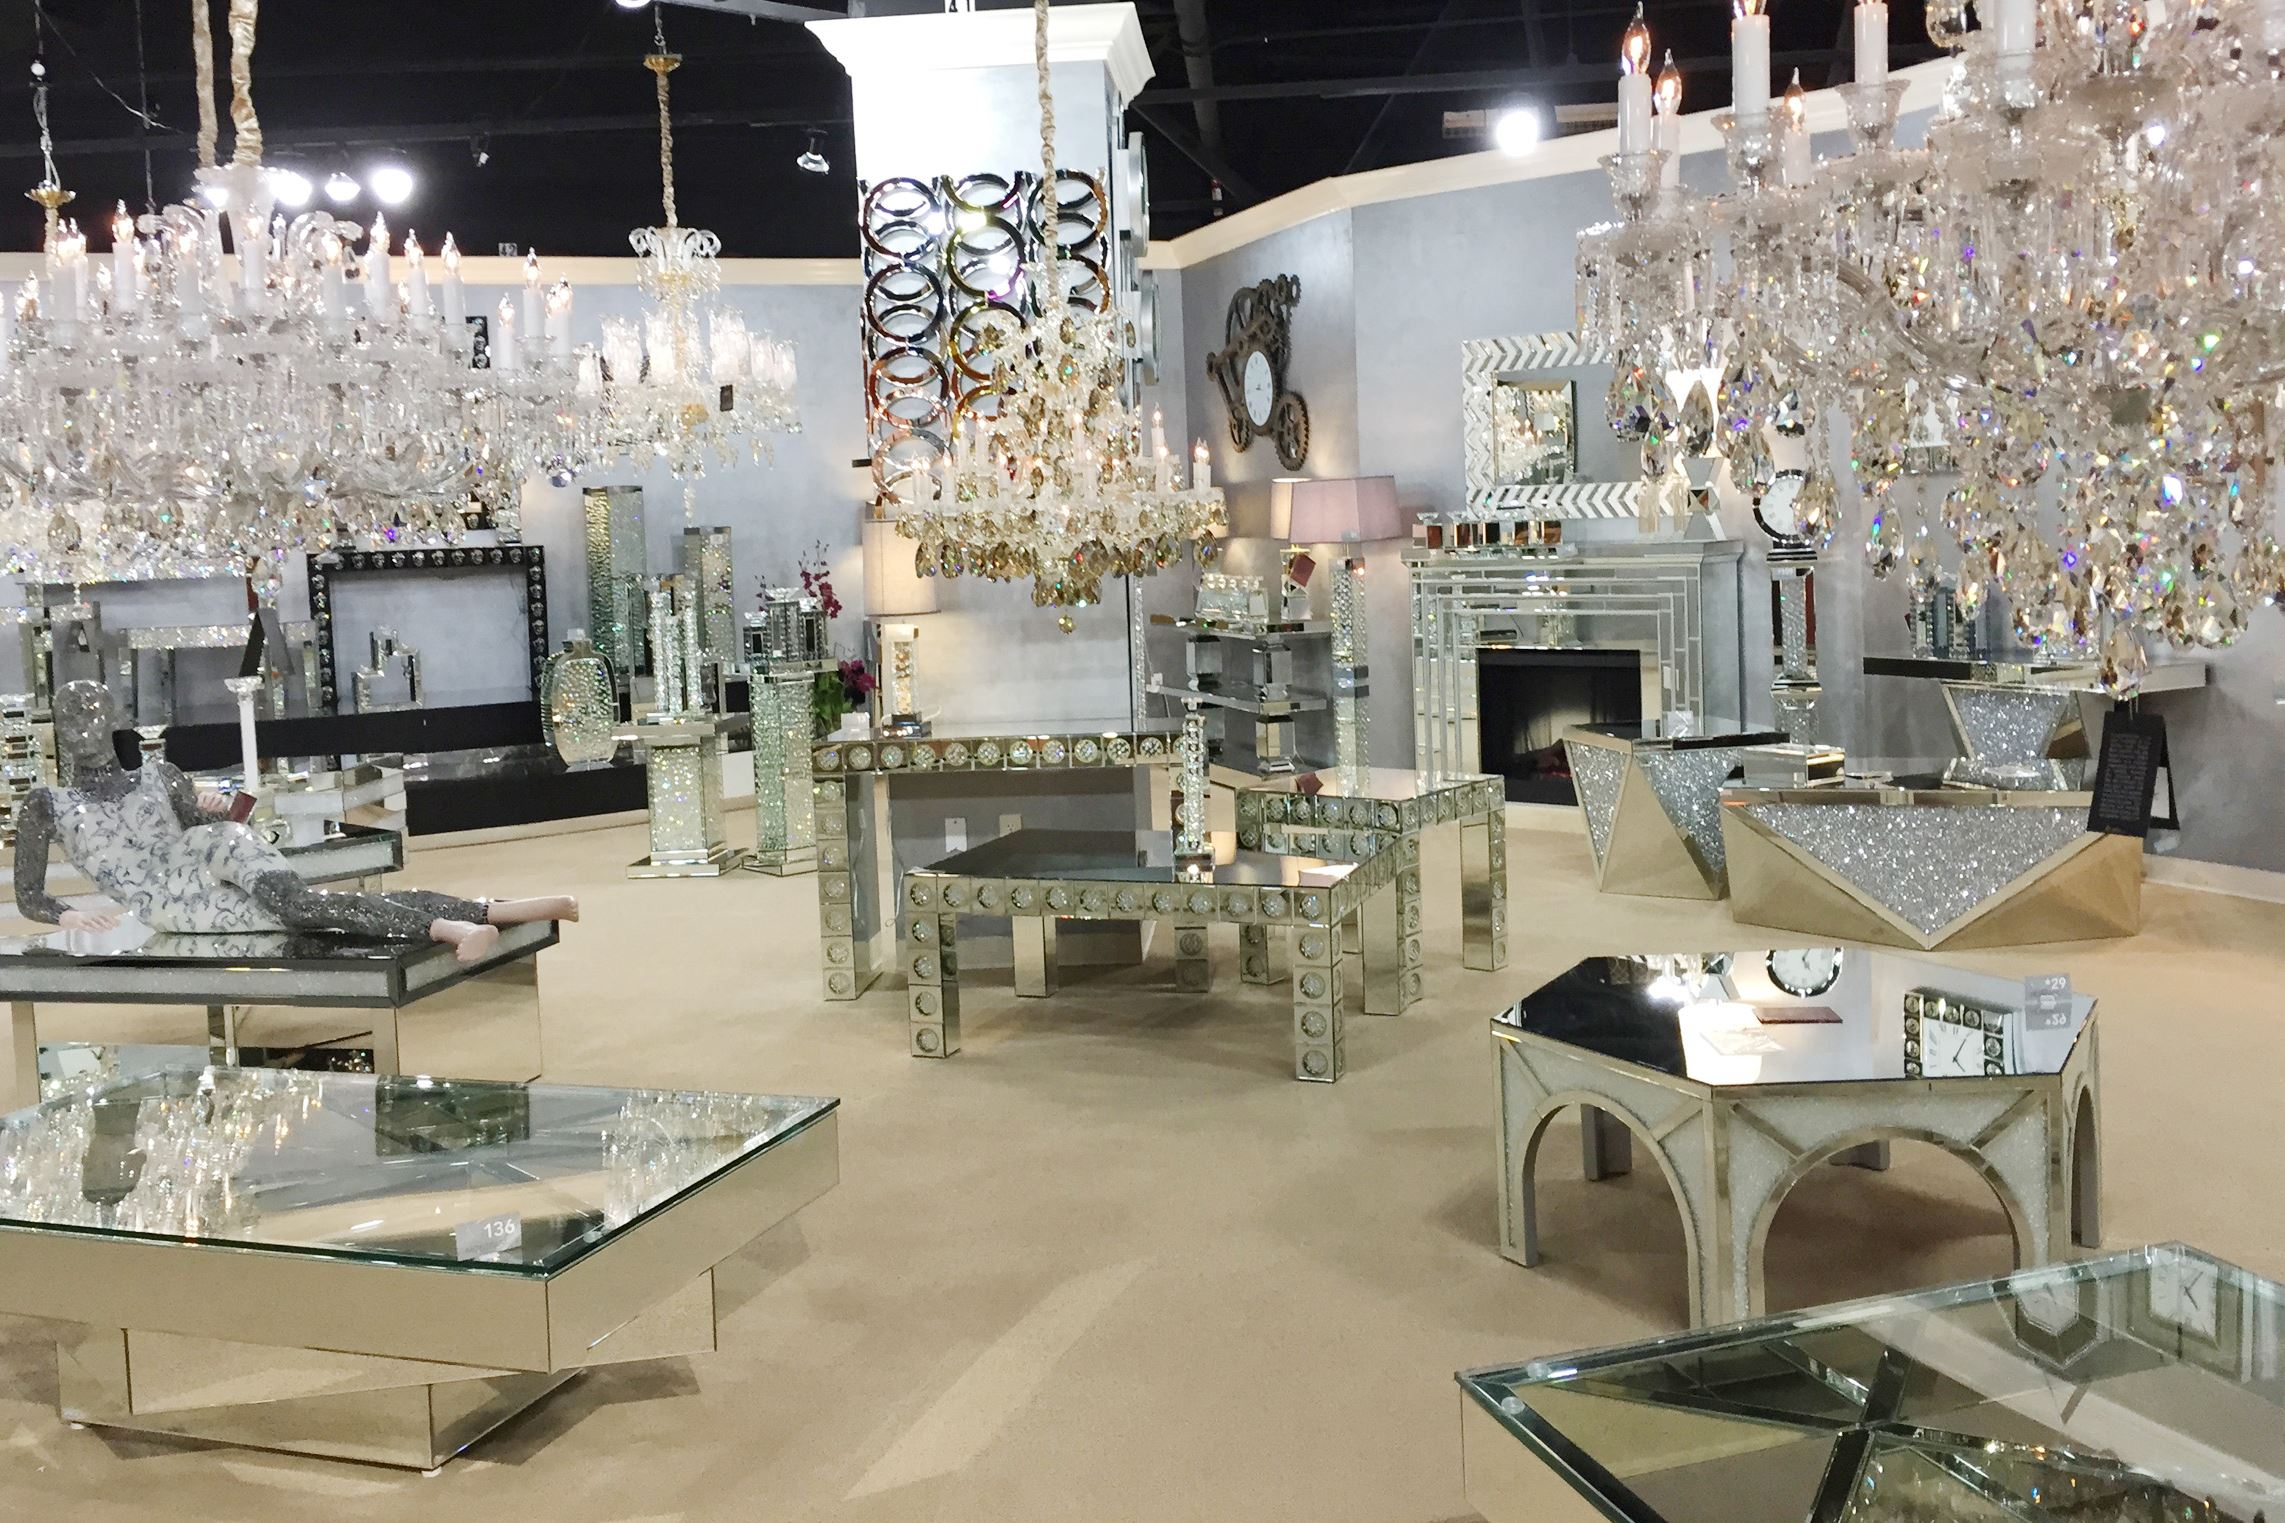 The Las Vegas Furniture Market Shows Off Its Glitzy Glamorous Side With Some Bold Sexy Designs